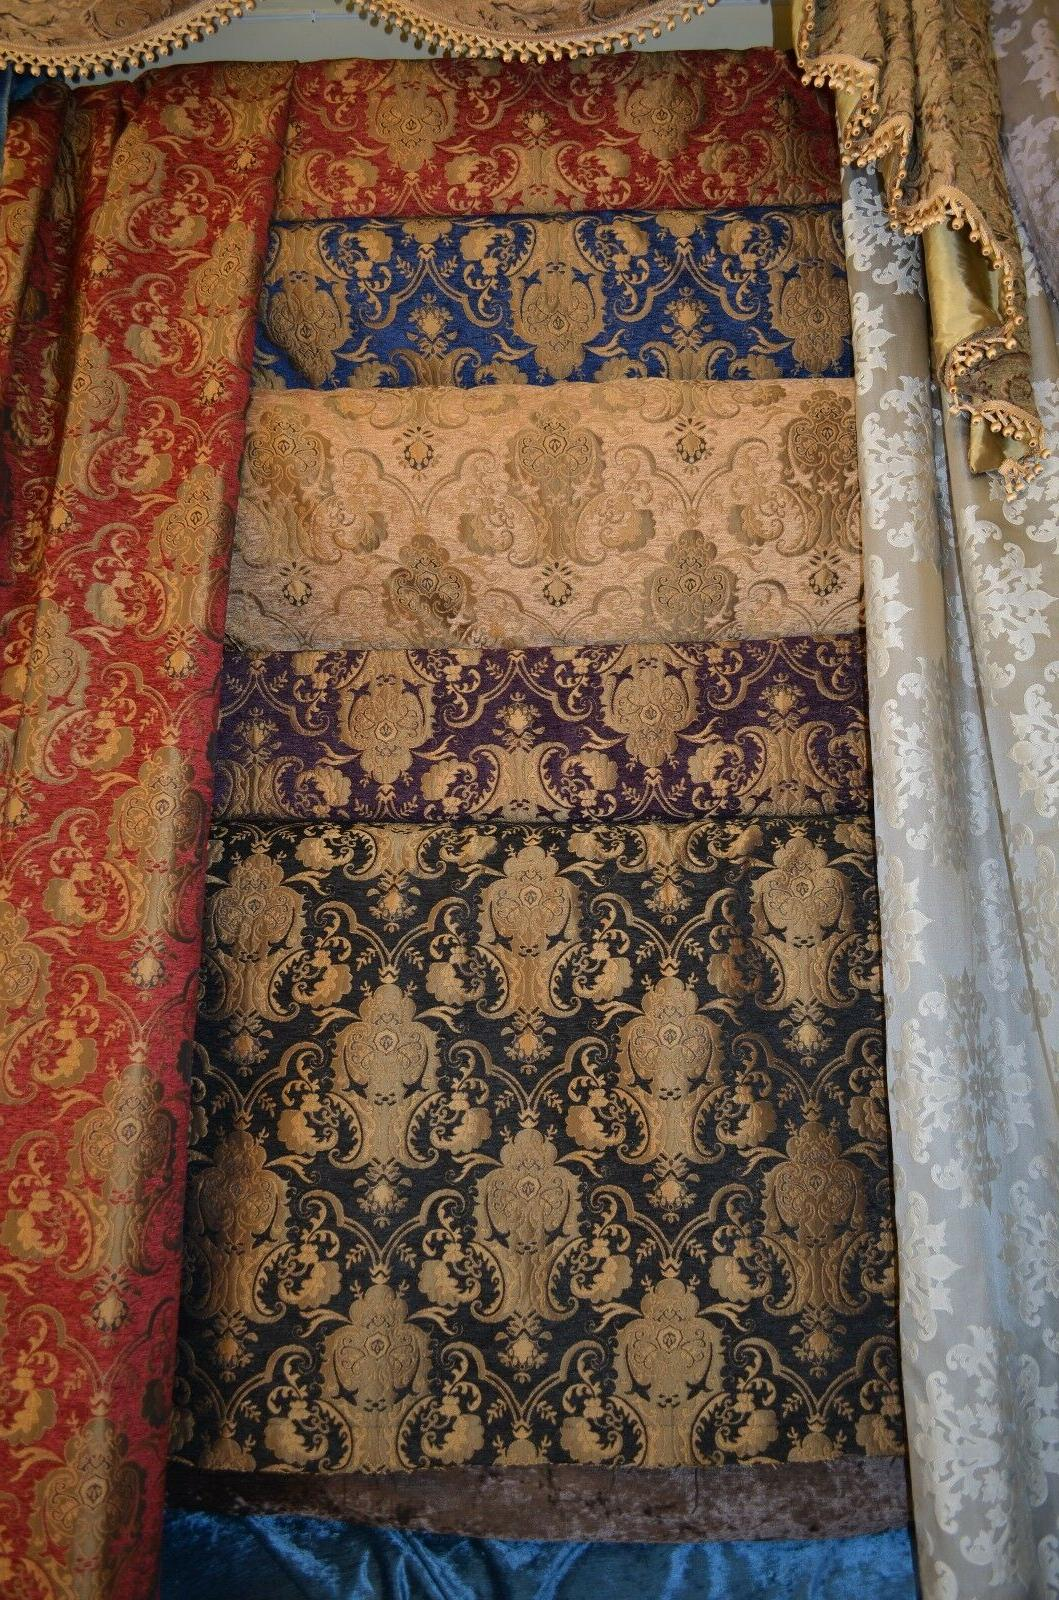 Chenille Renaissance Home Decor Upholstery, Sold By the Yard